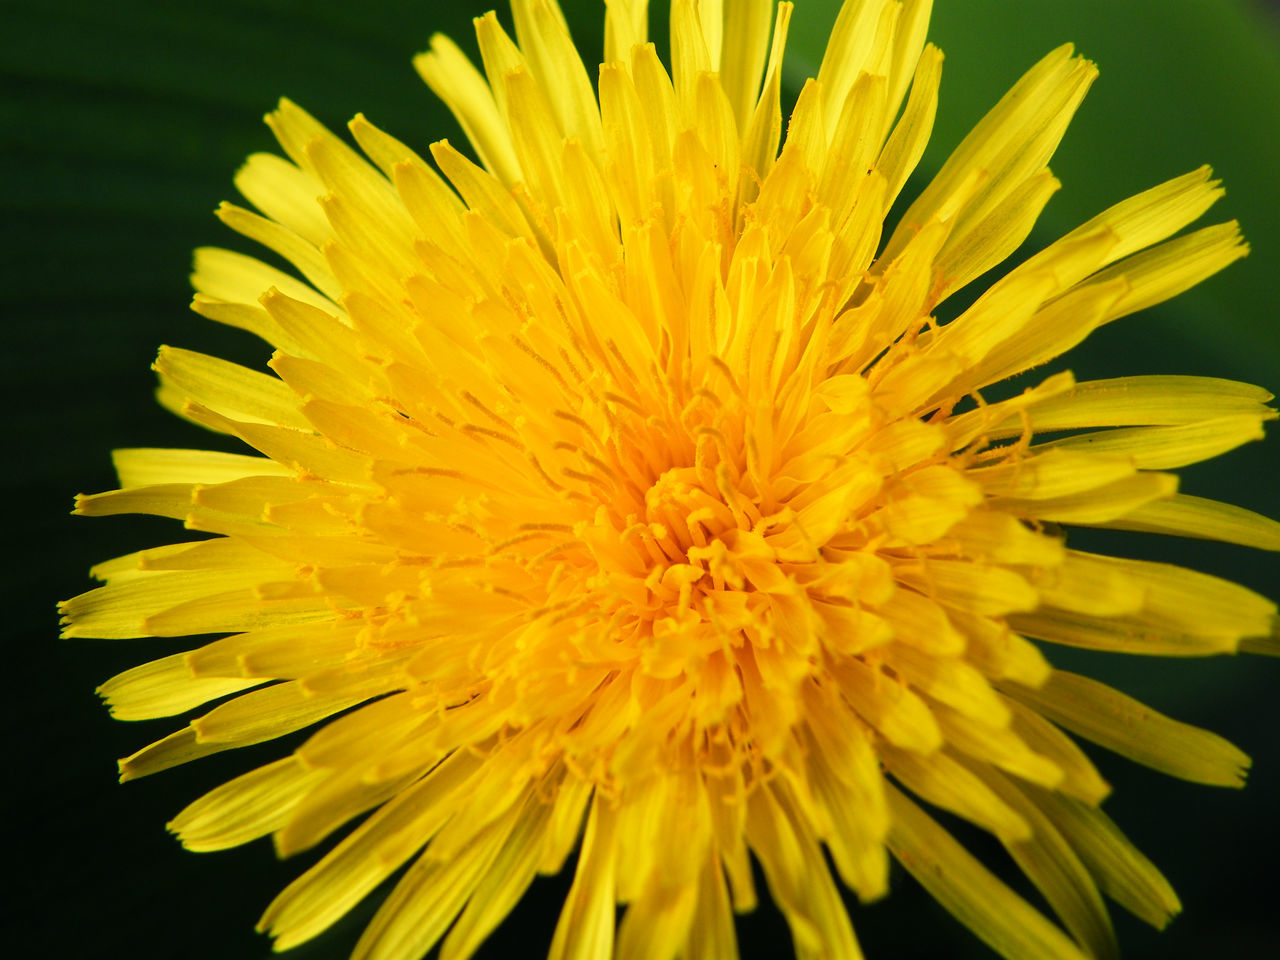 flower, yellow, petal, beauty in nature, fragility, freshness, flower head, nature, close-up, no people, chrysanthemum, growth, plant, blooming, outdoors, day